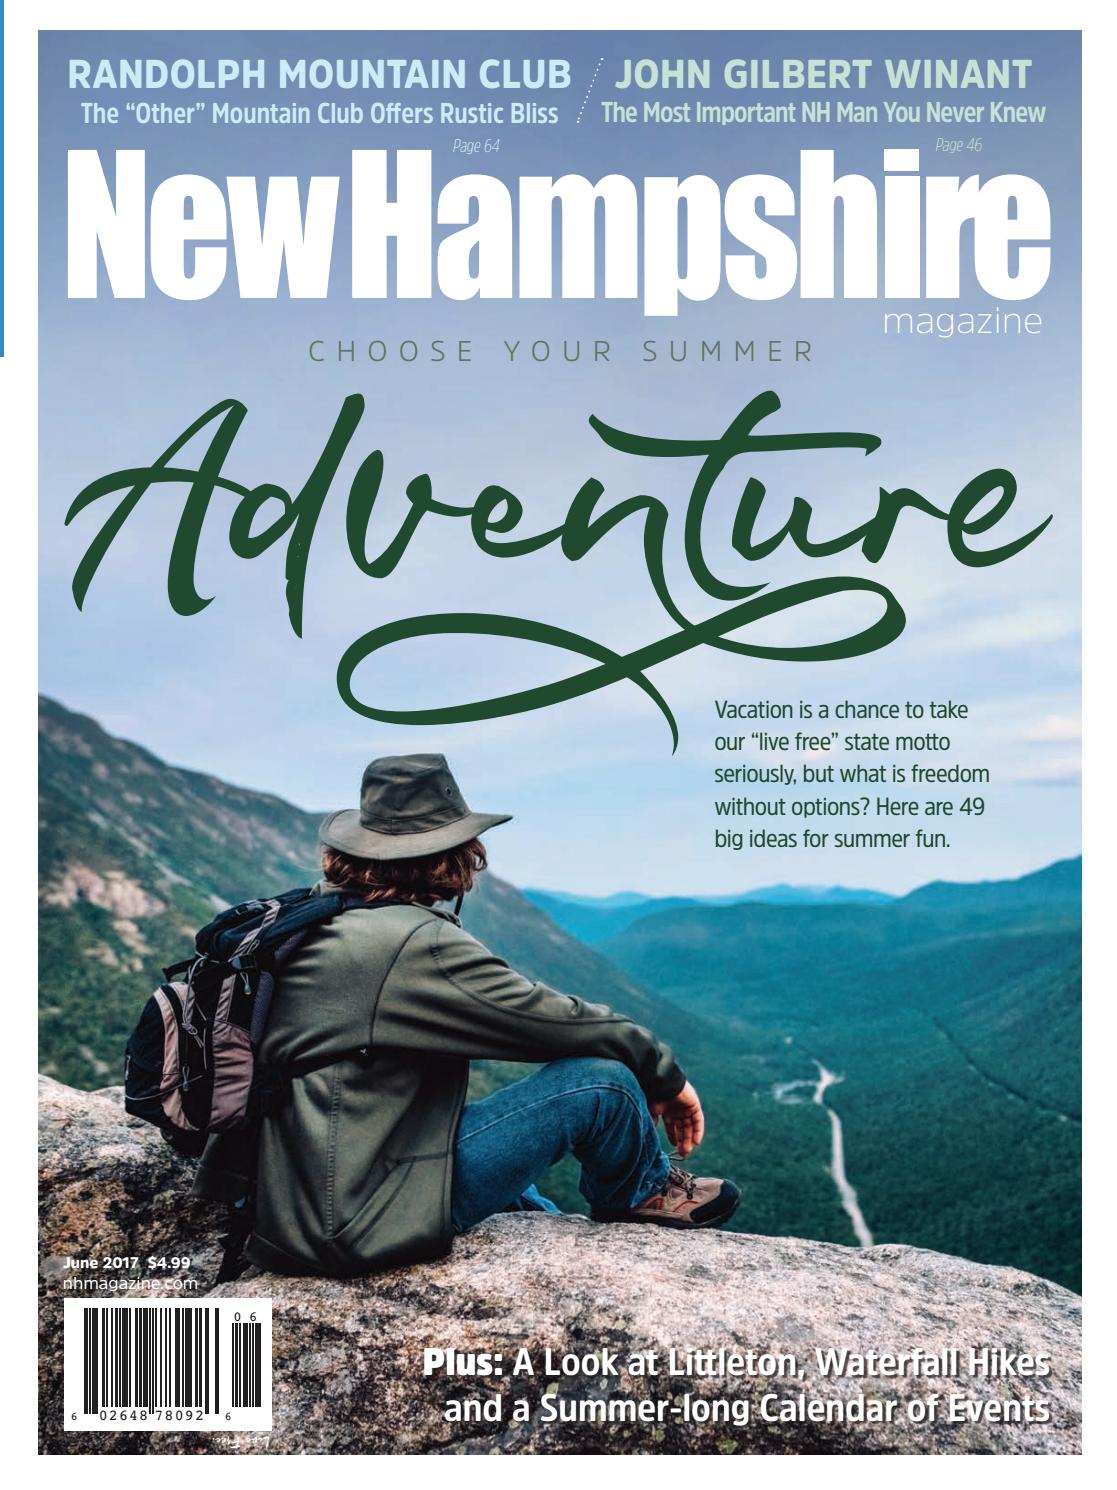 New hampshire magazine june 2017 by mclean communications issuu aiddatafo Images